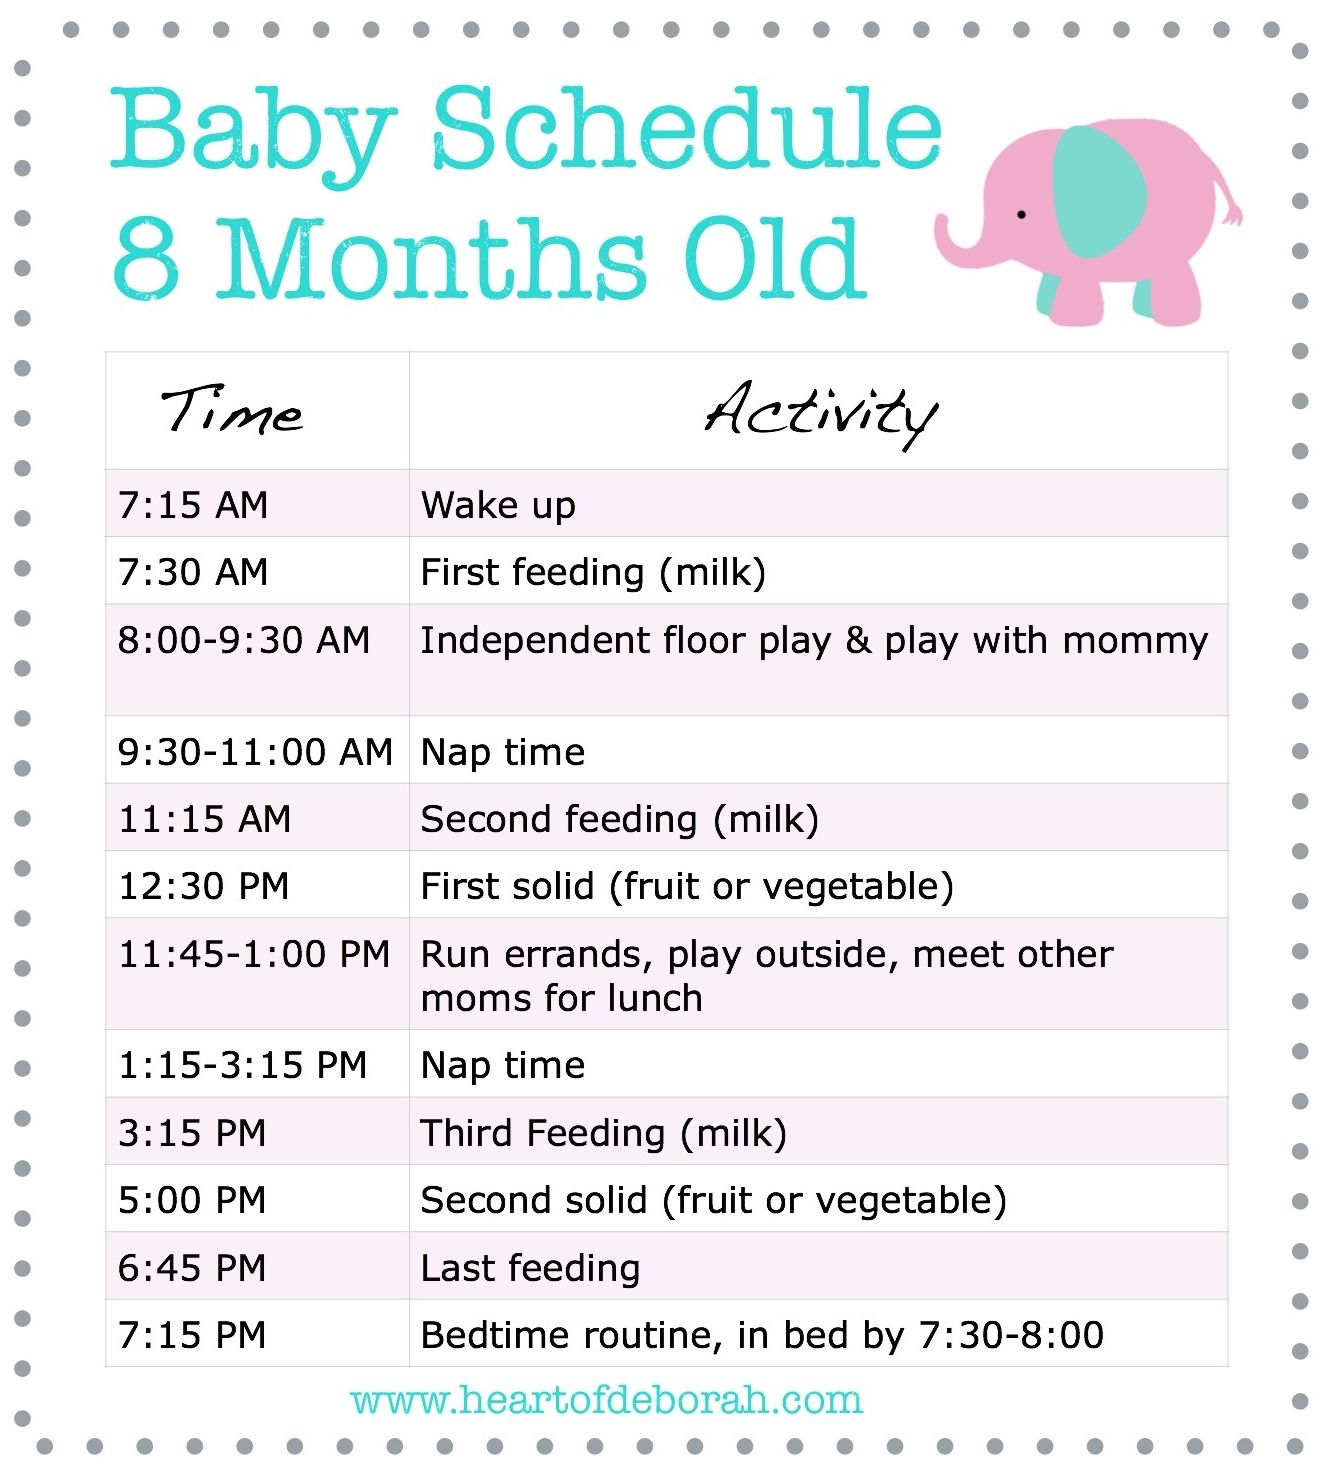 Sample baby schedule 8 months old sleep schedule babies and food sample baby food sleep schedule for 8 month old baby geenschuldenfo Image collections